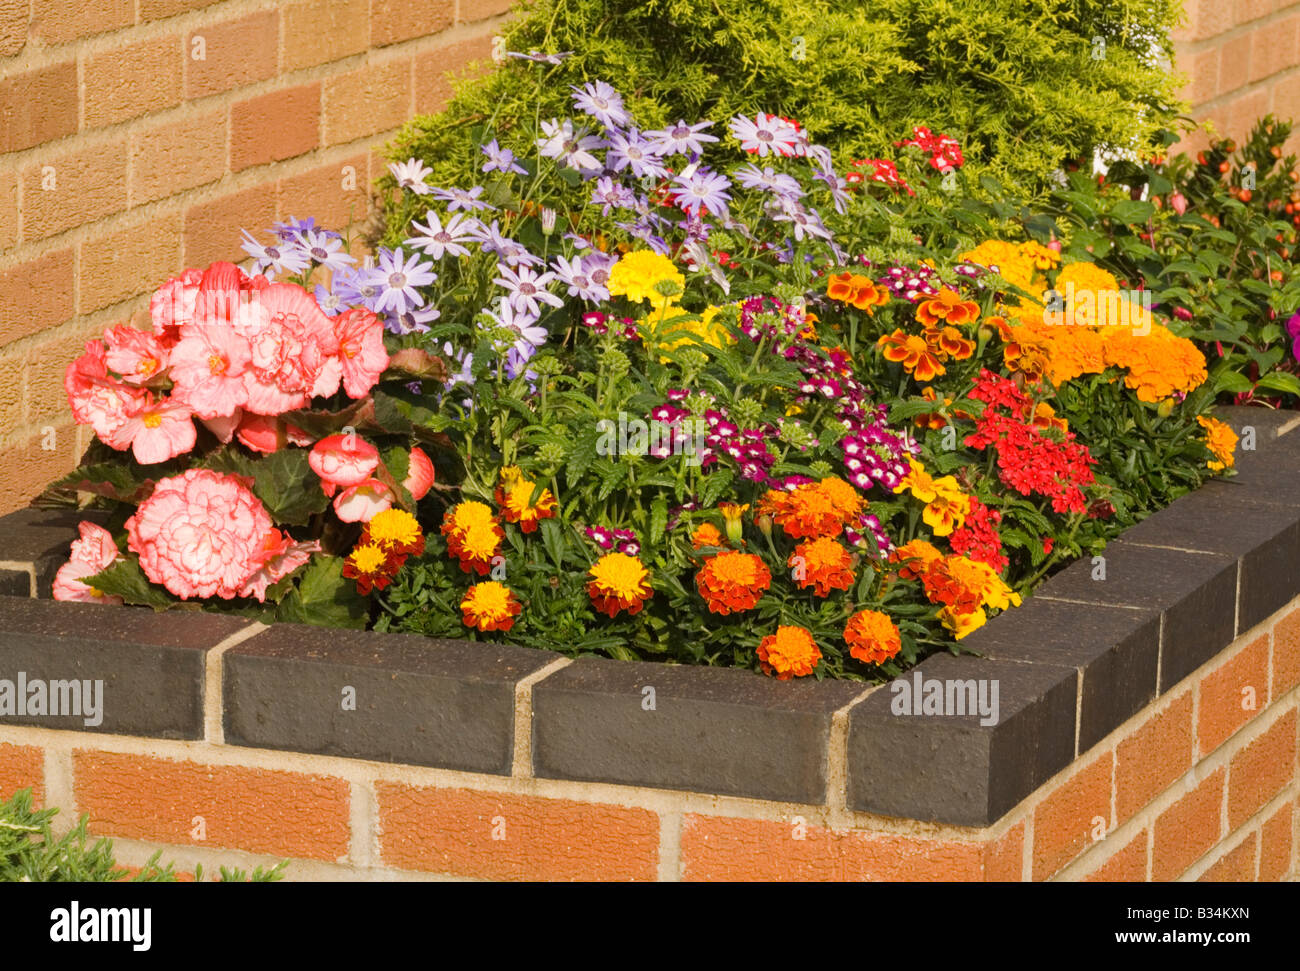 A raised flower bed in a garden - Stock Image